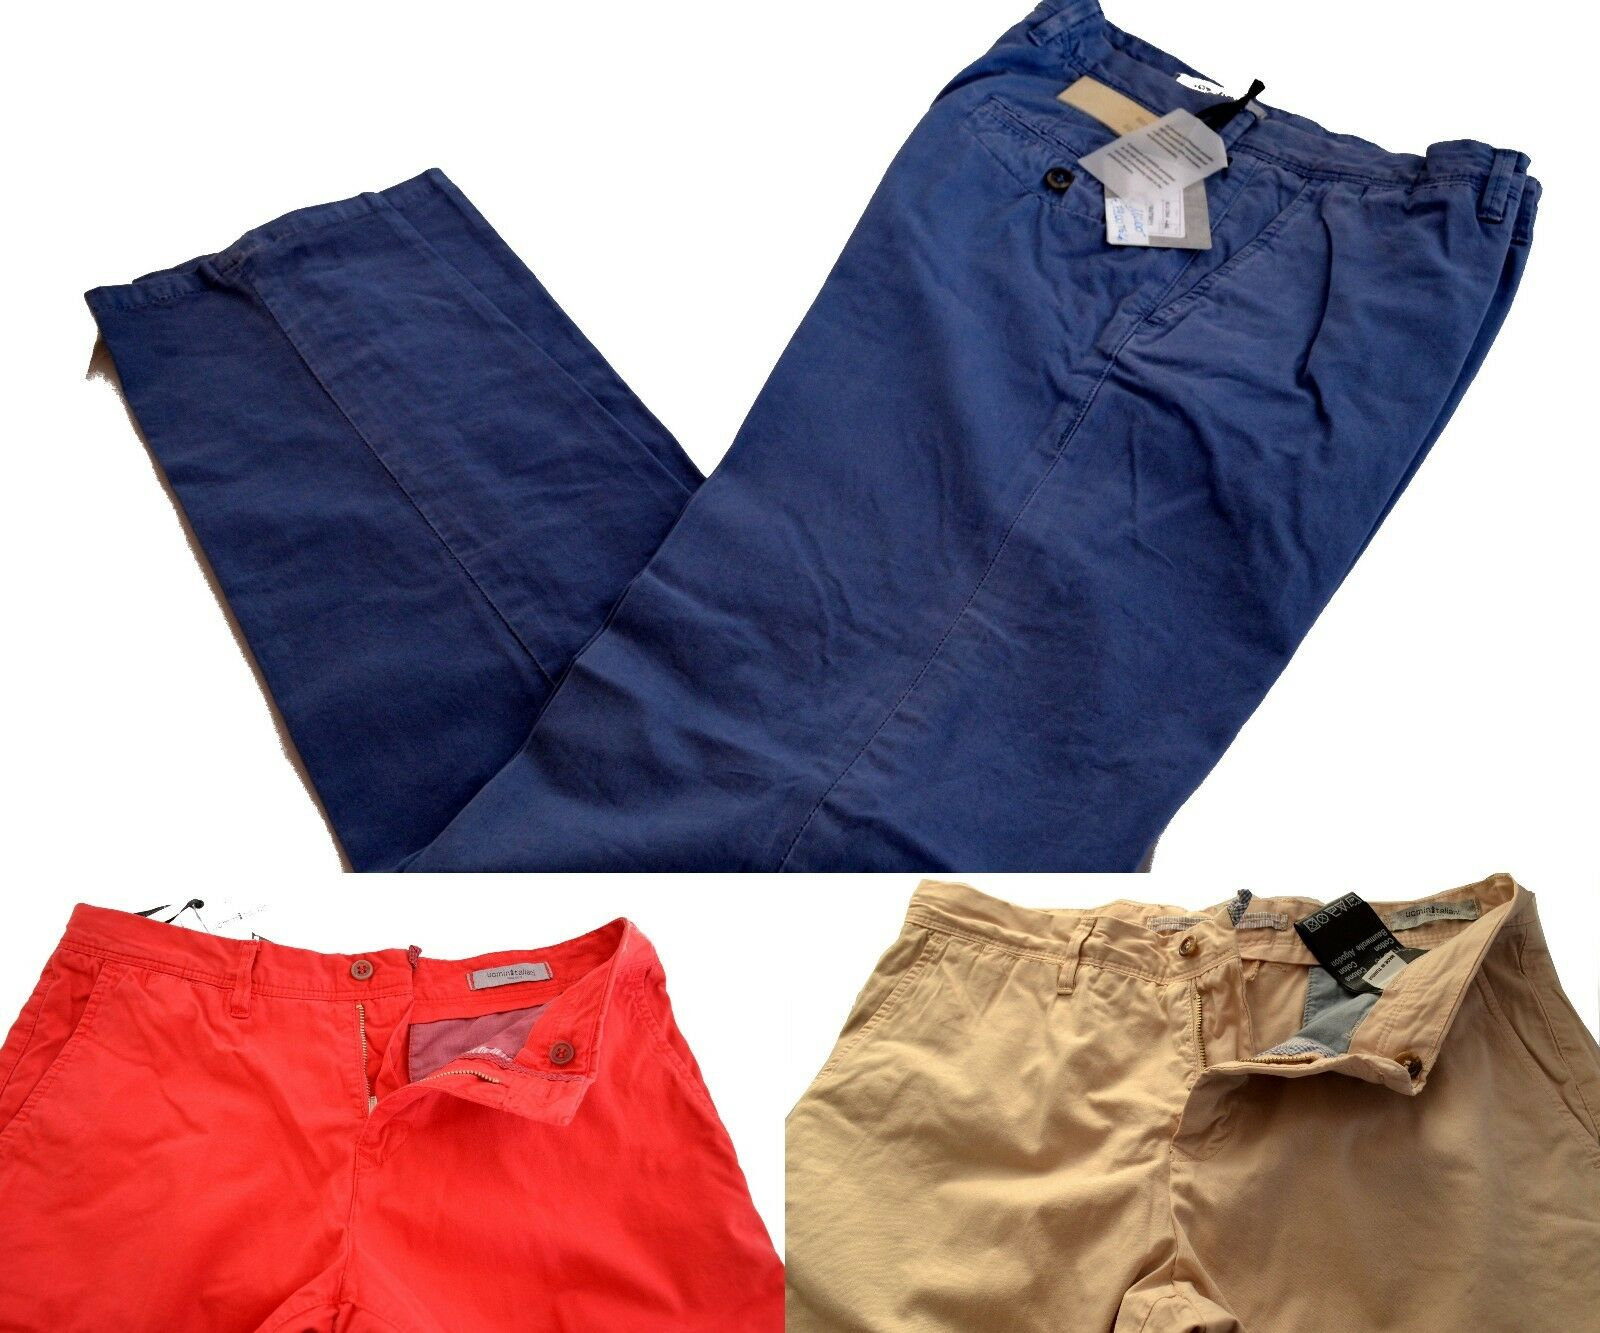 Pants Uomini Italiani Since 1959 Trousers 100% Cotton High Quality blue Beige Red